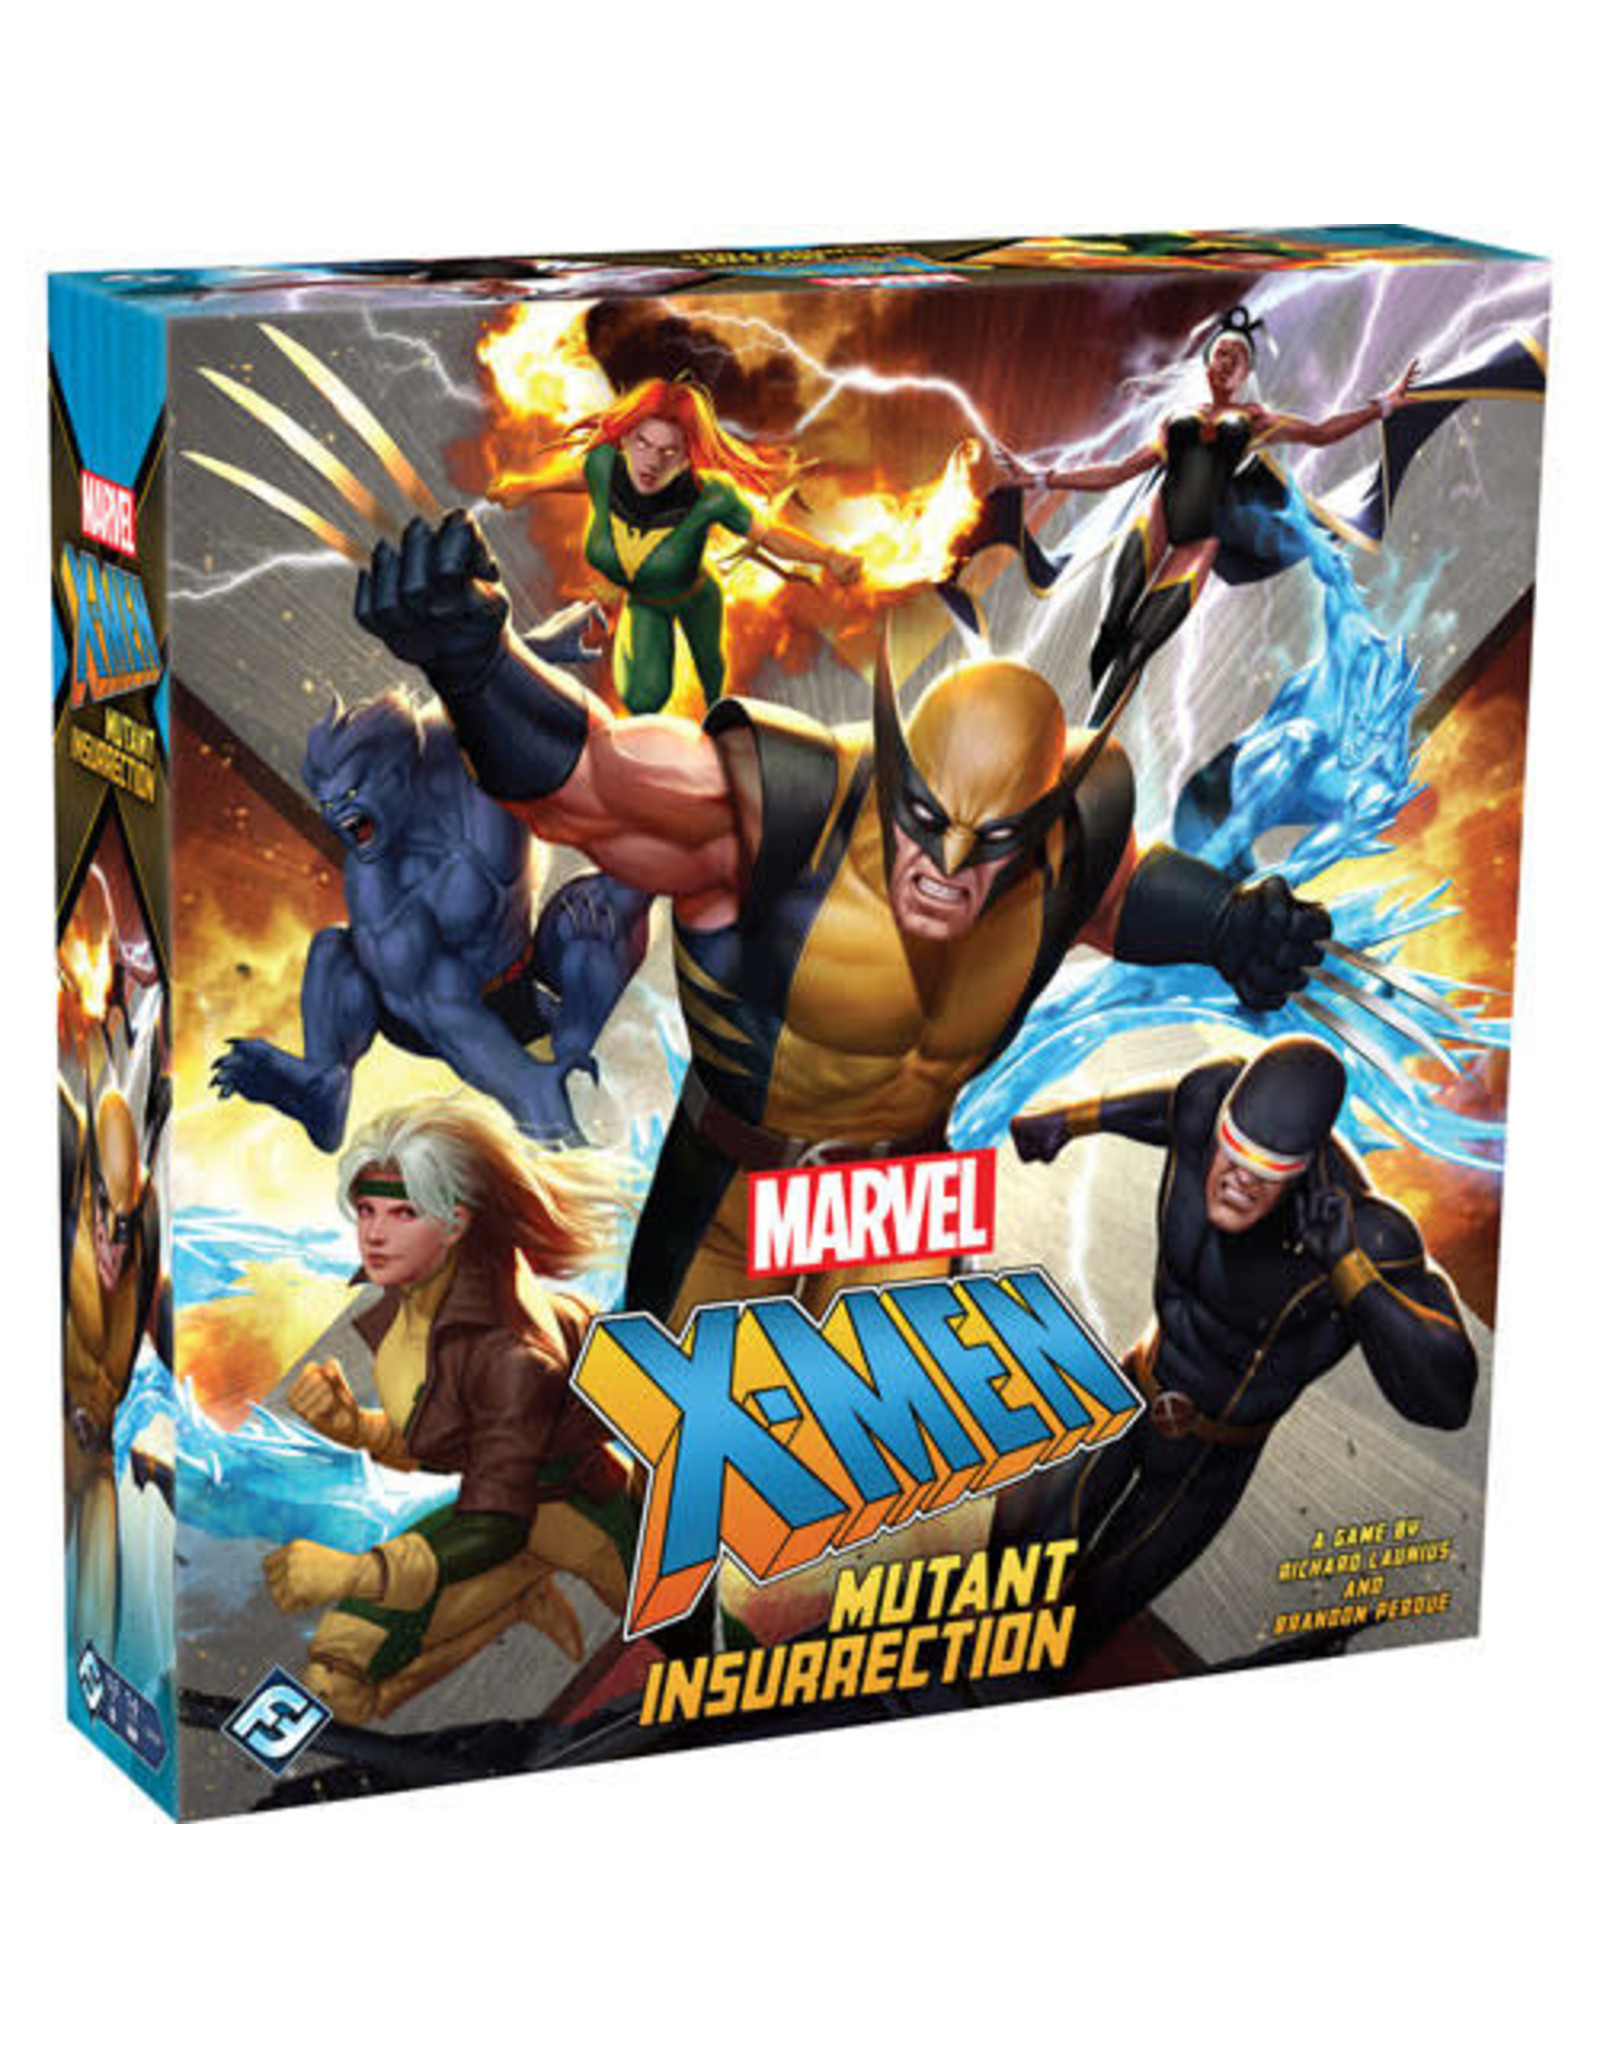 Marvel X-Men Mutant Insurrection Board Game